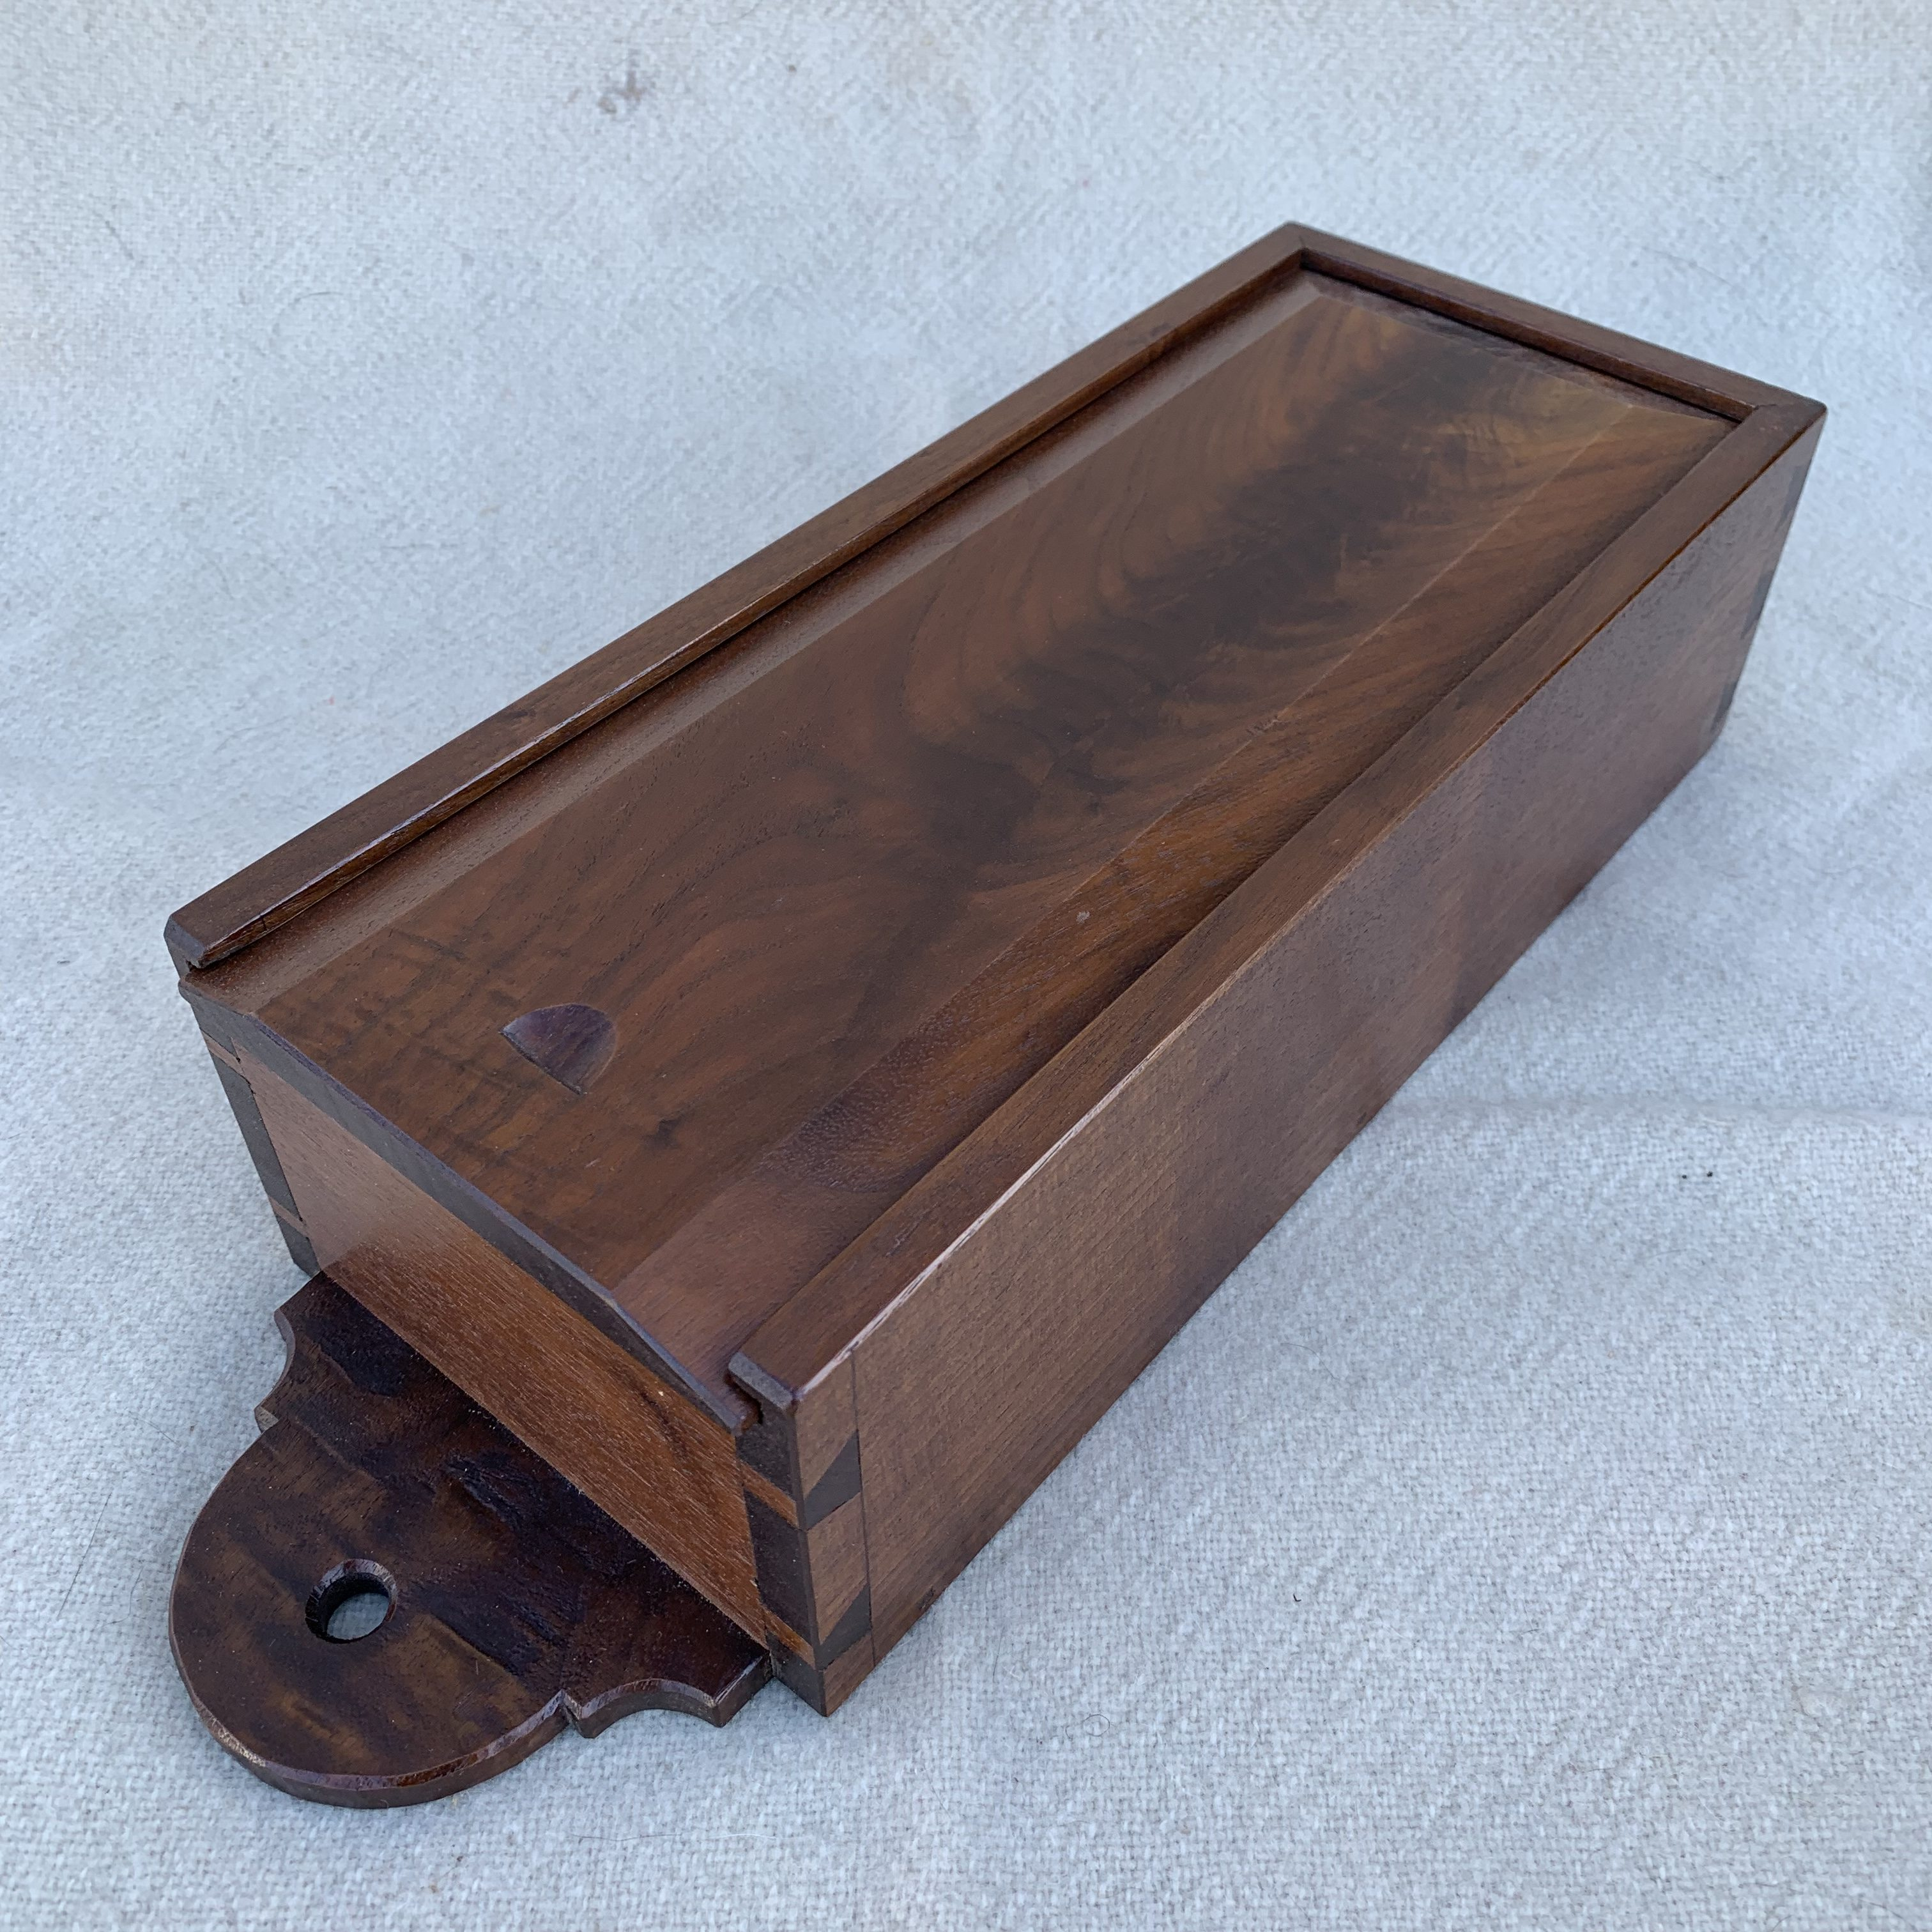 Walnut candle box